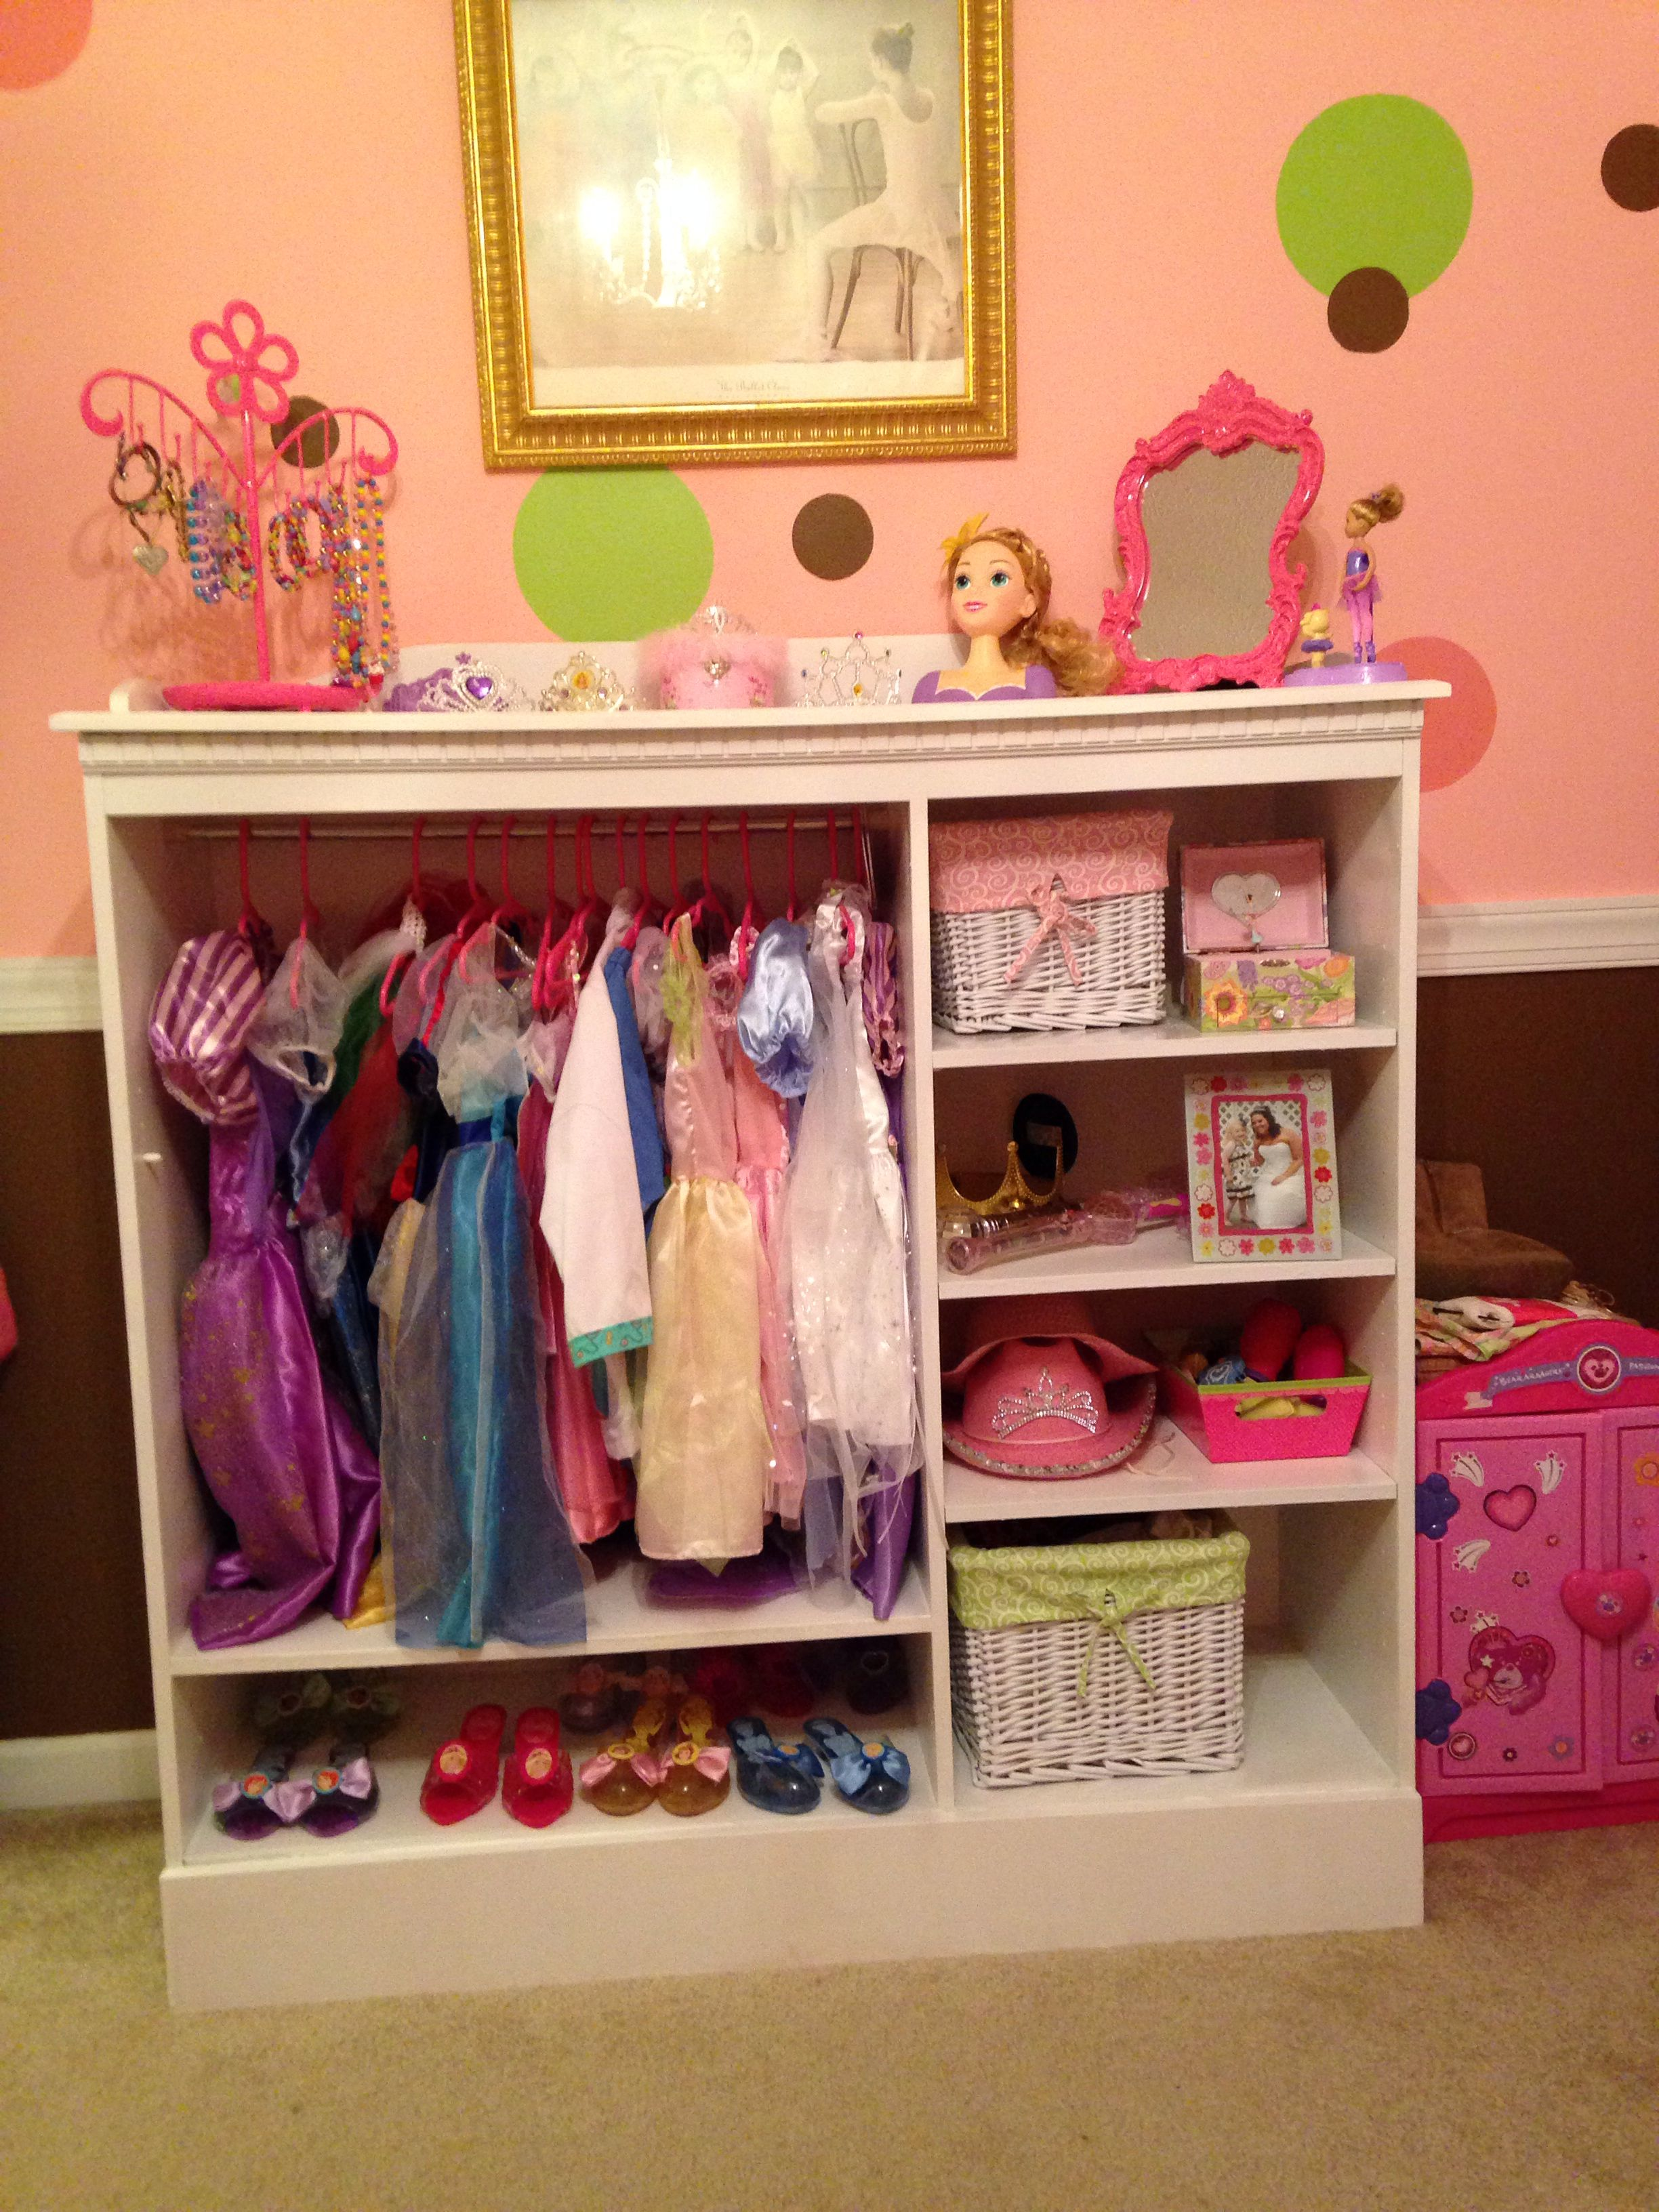 Pinterest Schlafzimmer Mädchen Dress Up Closet For Abby Linka Zimmer Pinterest